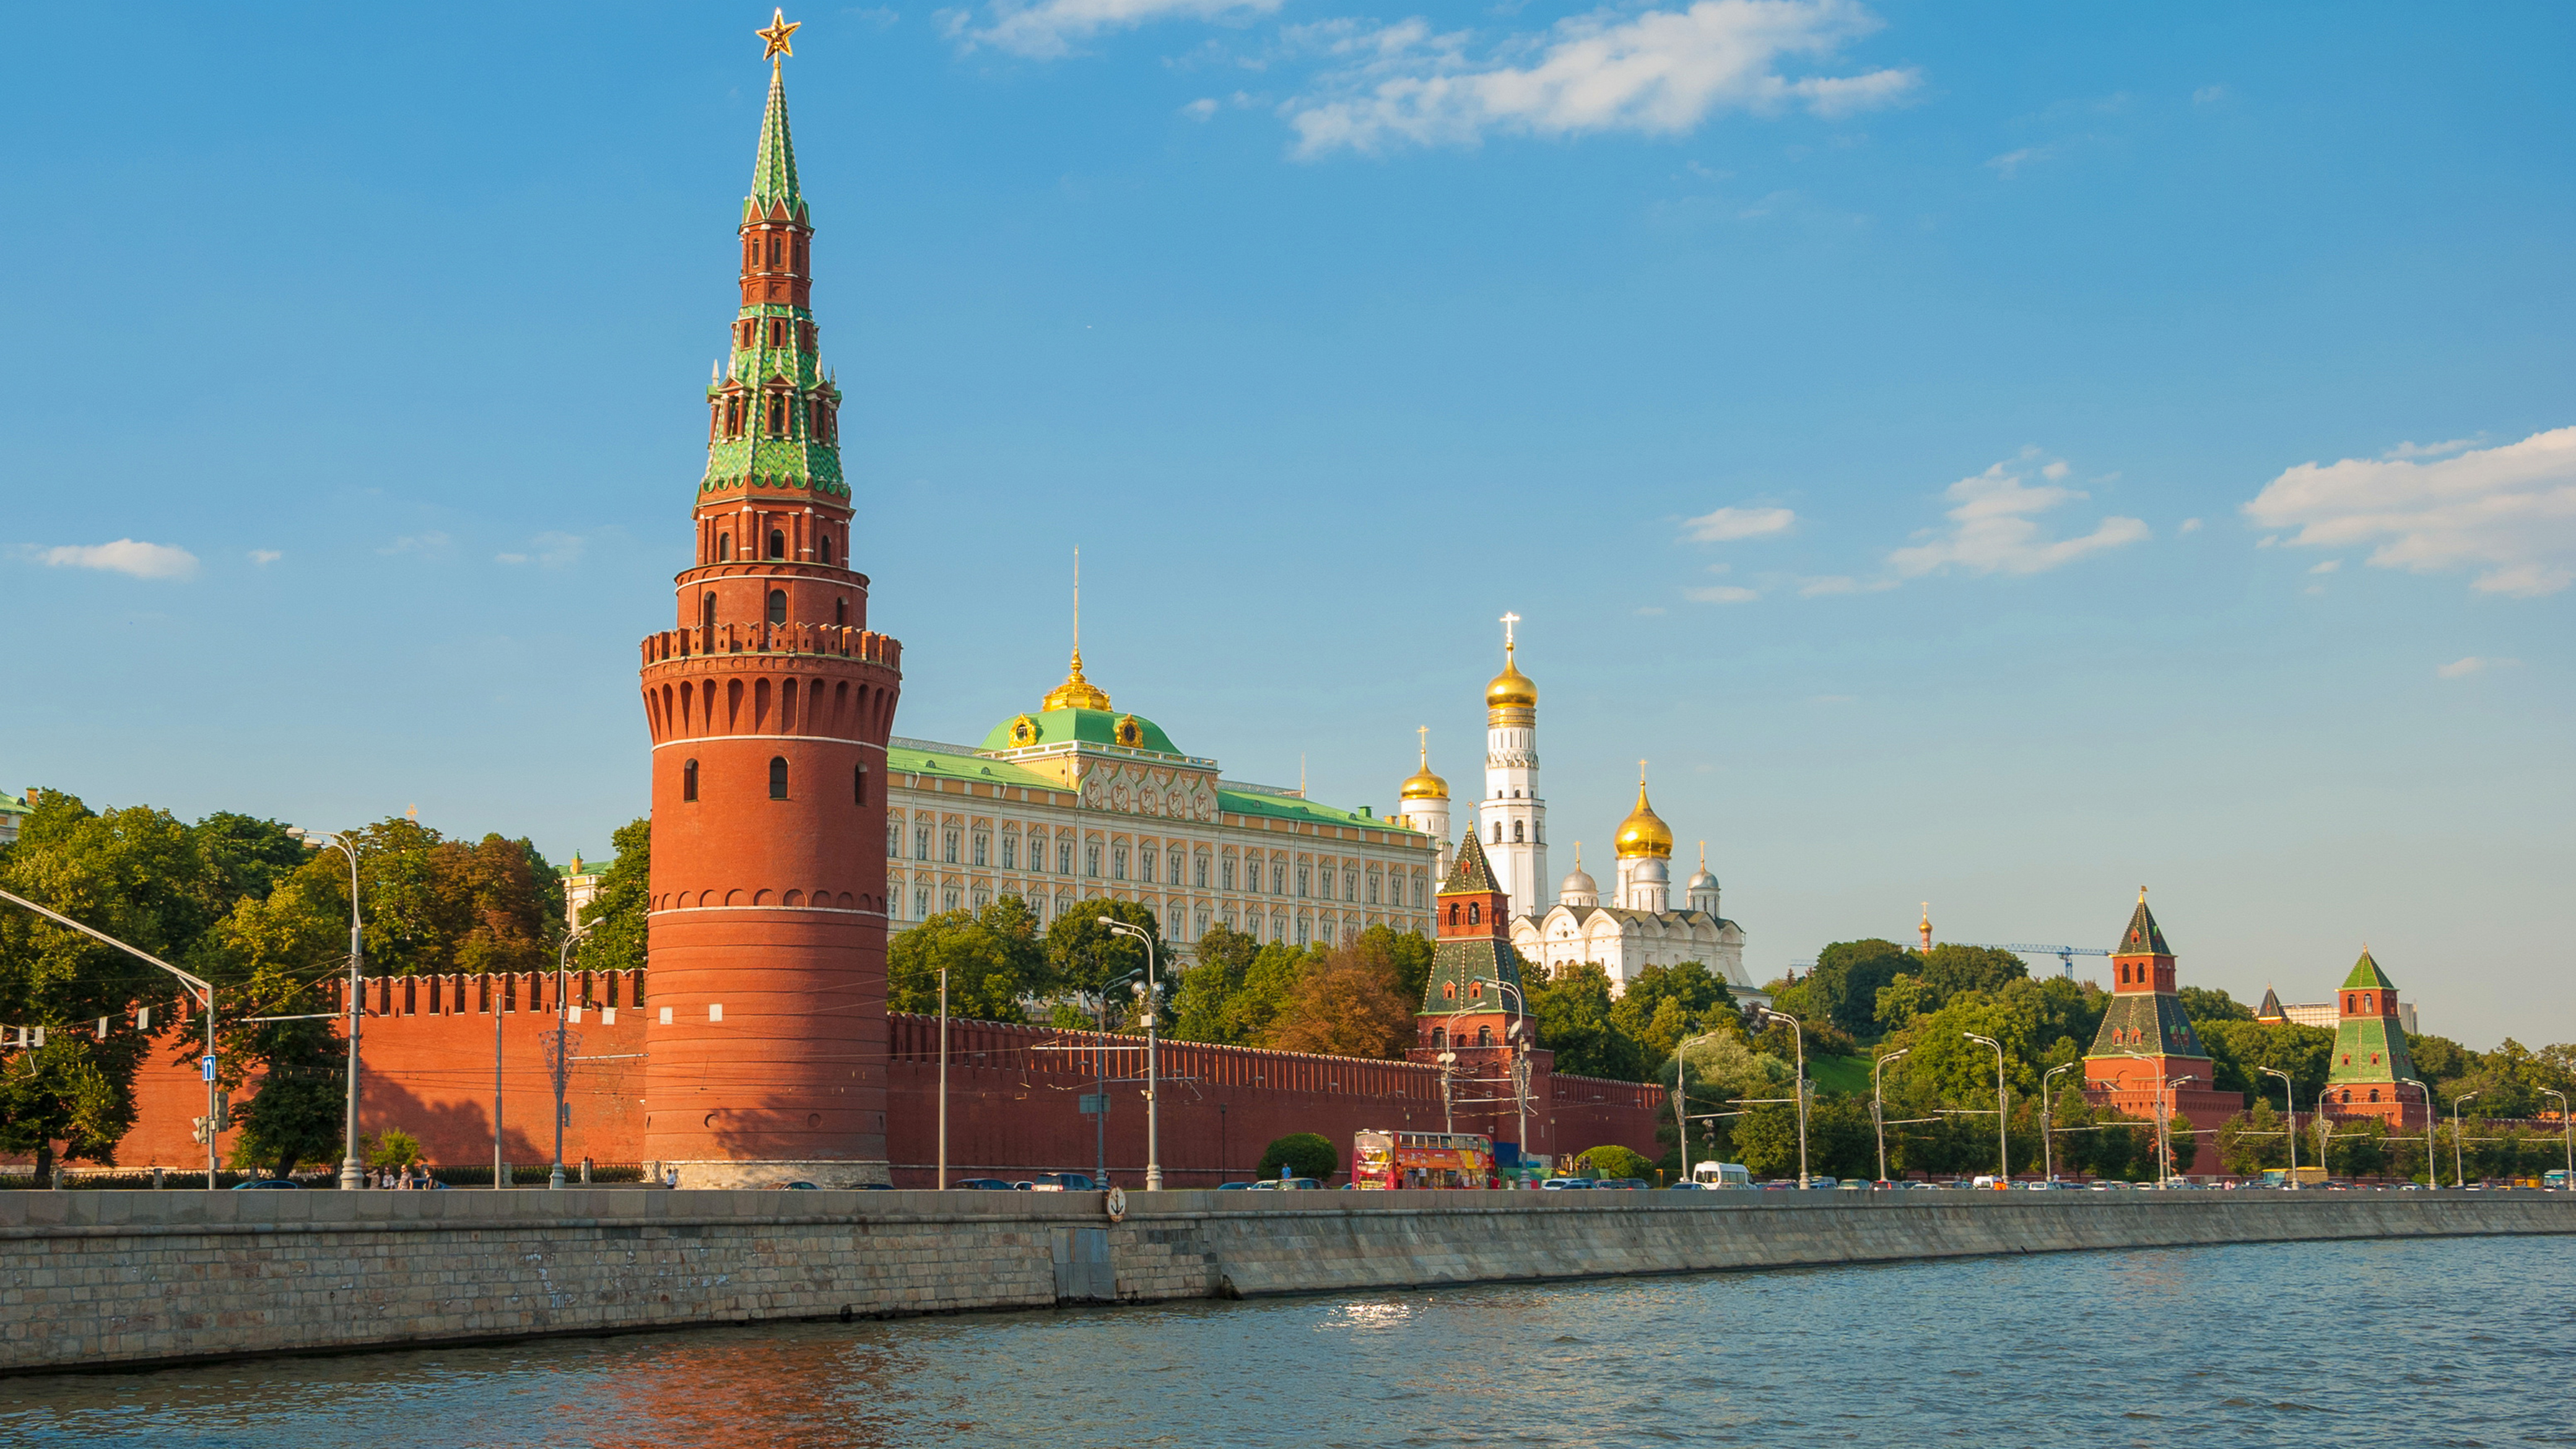 View of the Kremlin and the Kremlin embankment by the Moskva Riv